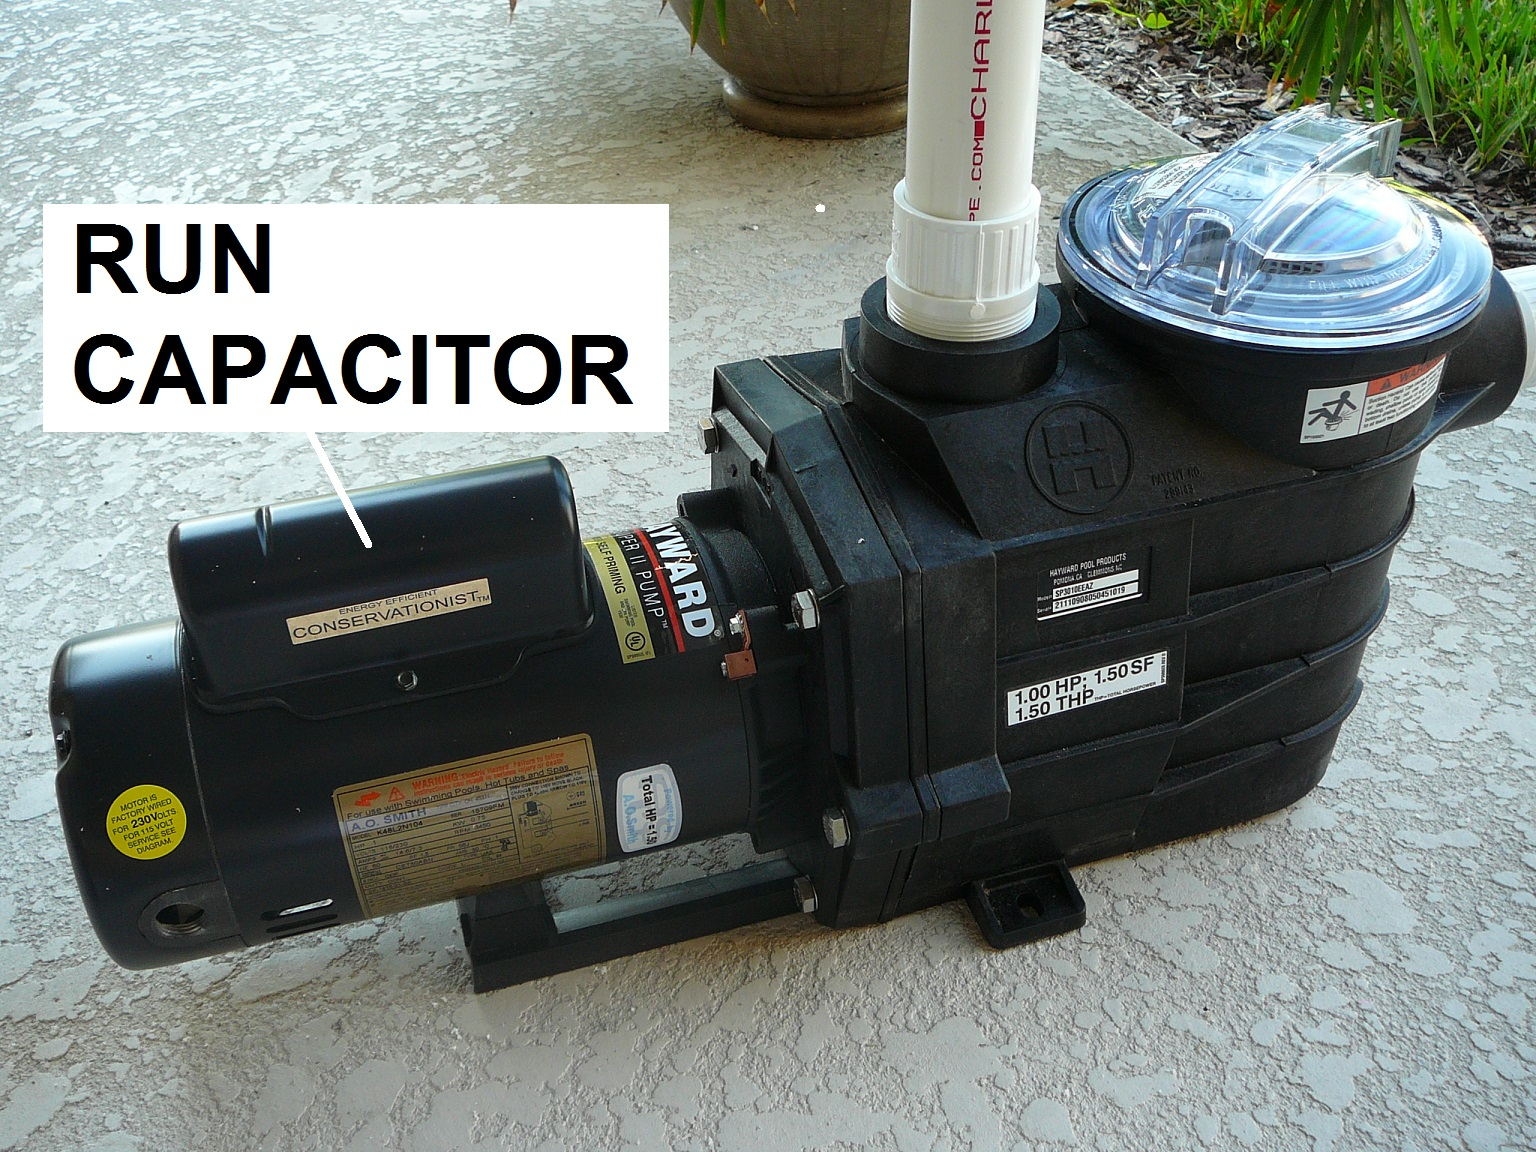 1 p1060078 1?format=jpg&scale=both&mode=pad&anchor=middlecenter&width=300&height=250 how to select the right capacitor for your pool pump motor  at readyjetset.co